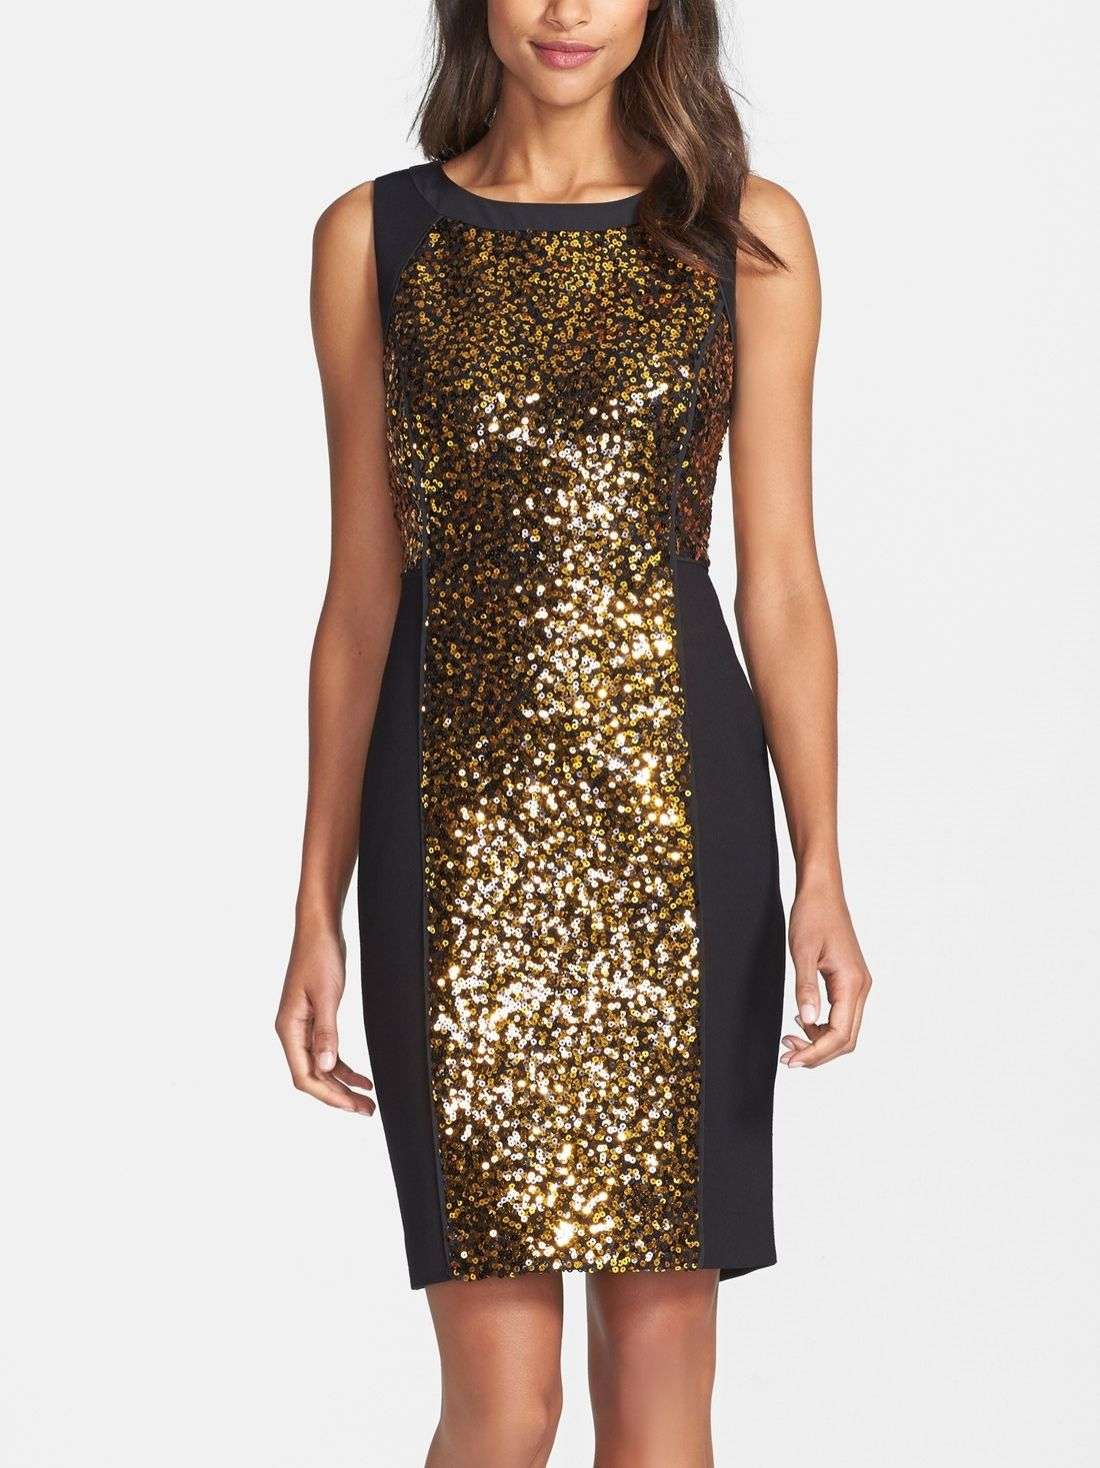 Image result for sparkly Sequin sheath party dress